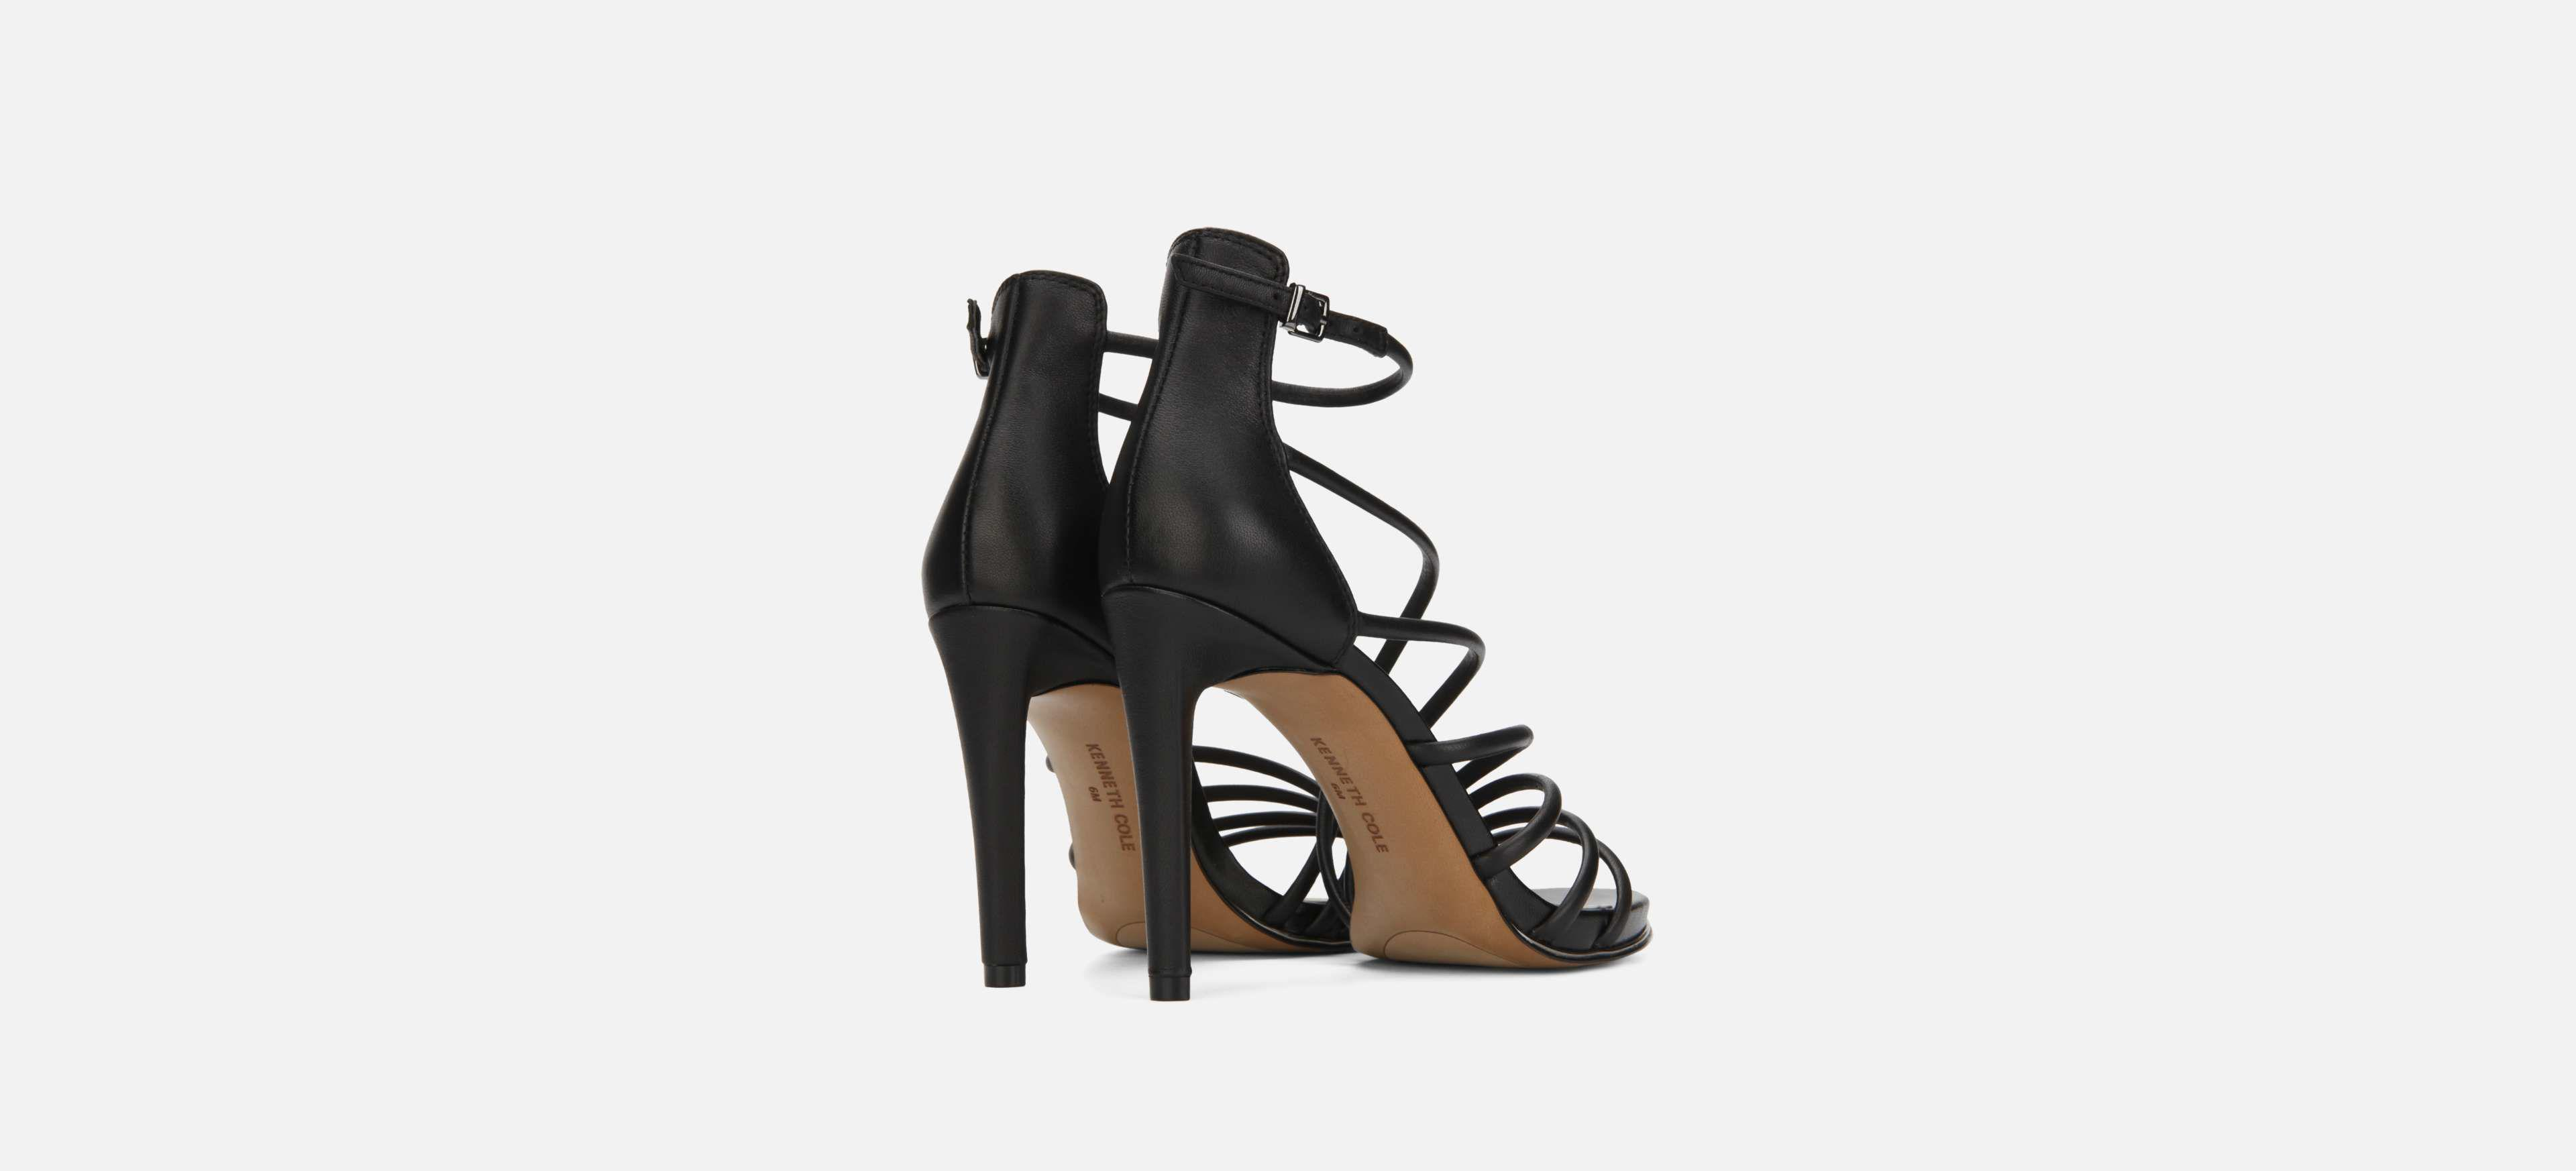 61425a5d71a5 Lyst - Kenneth Cole Barletta Strappy Leather Stiletto Heel in Black